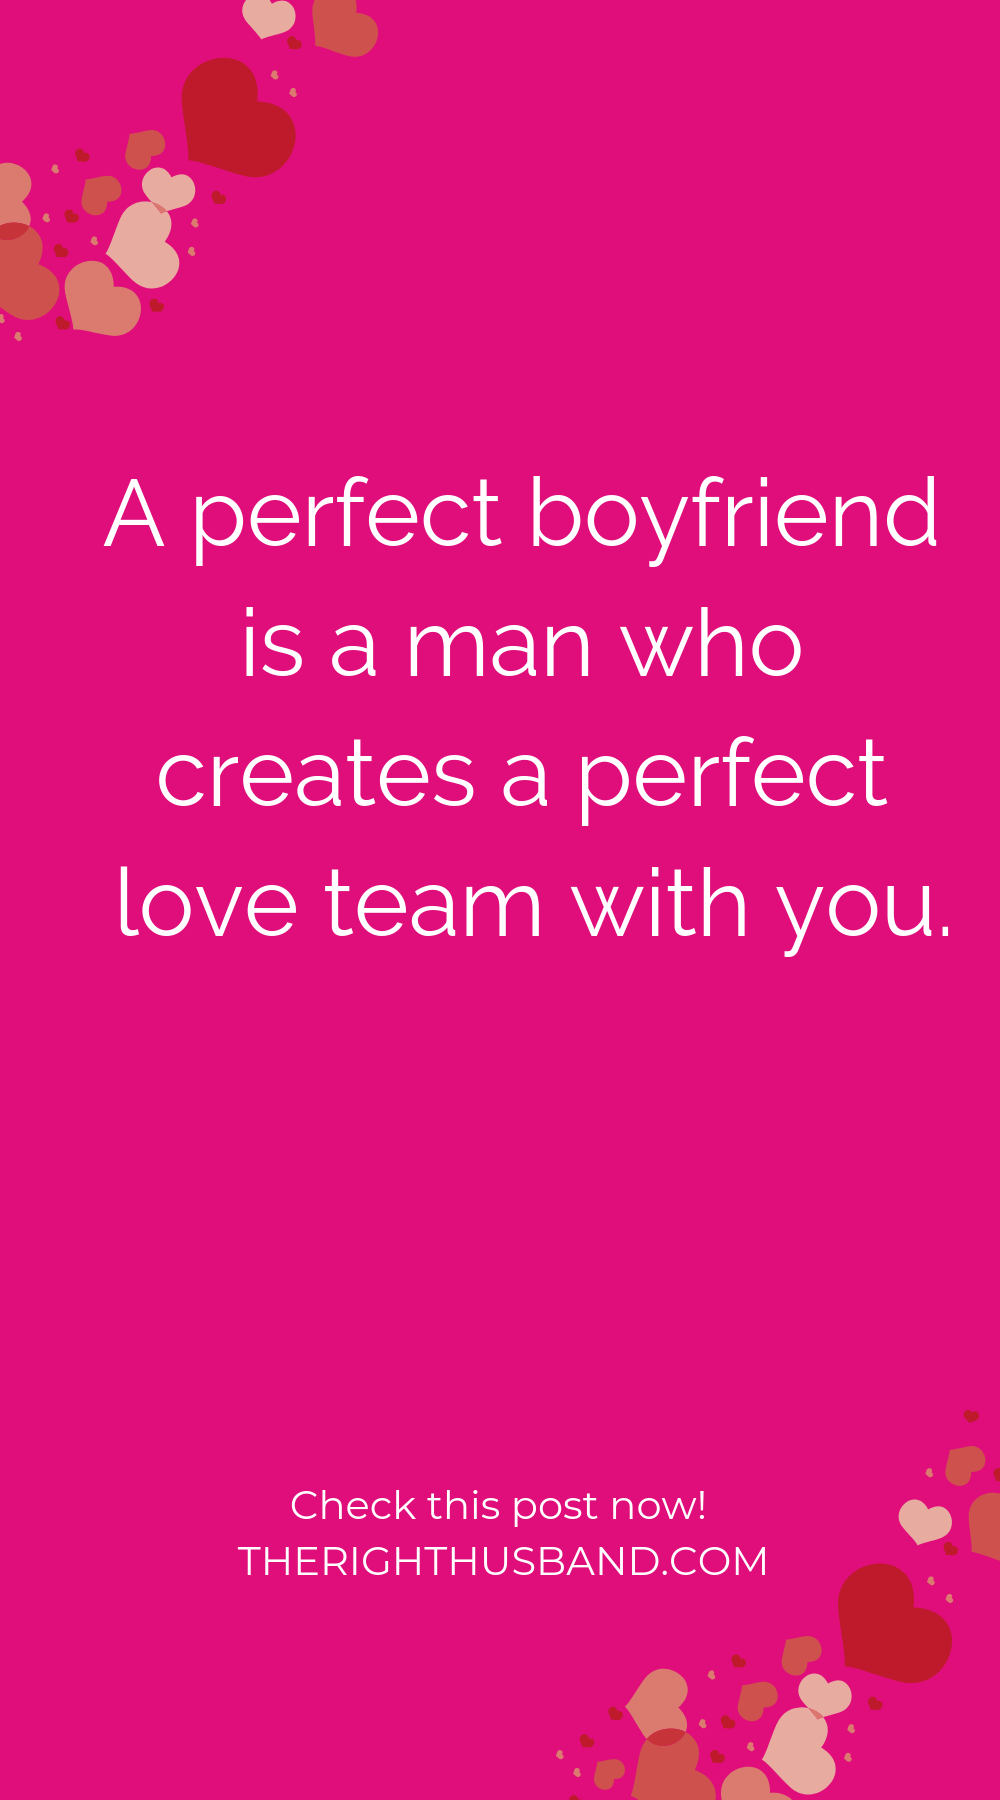 How to find your perfect boyfriend 5